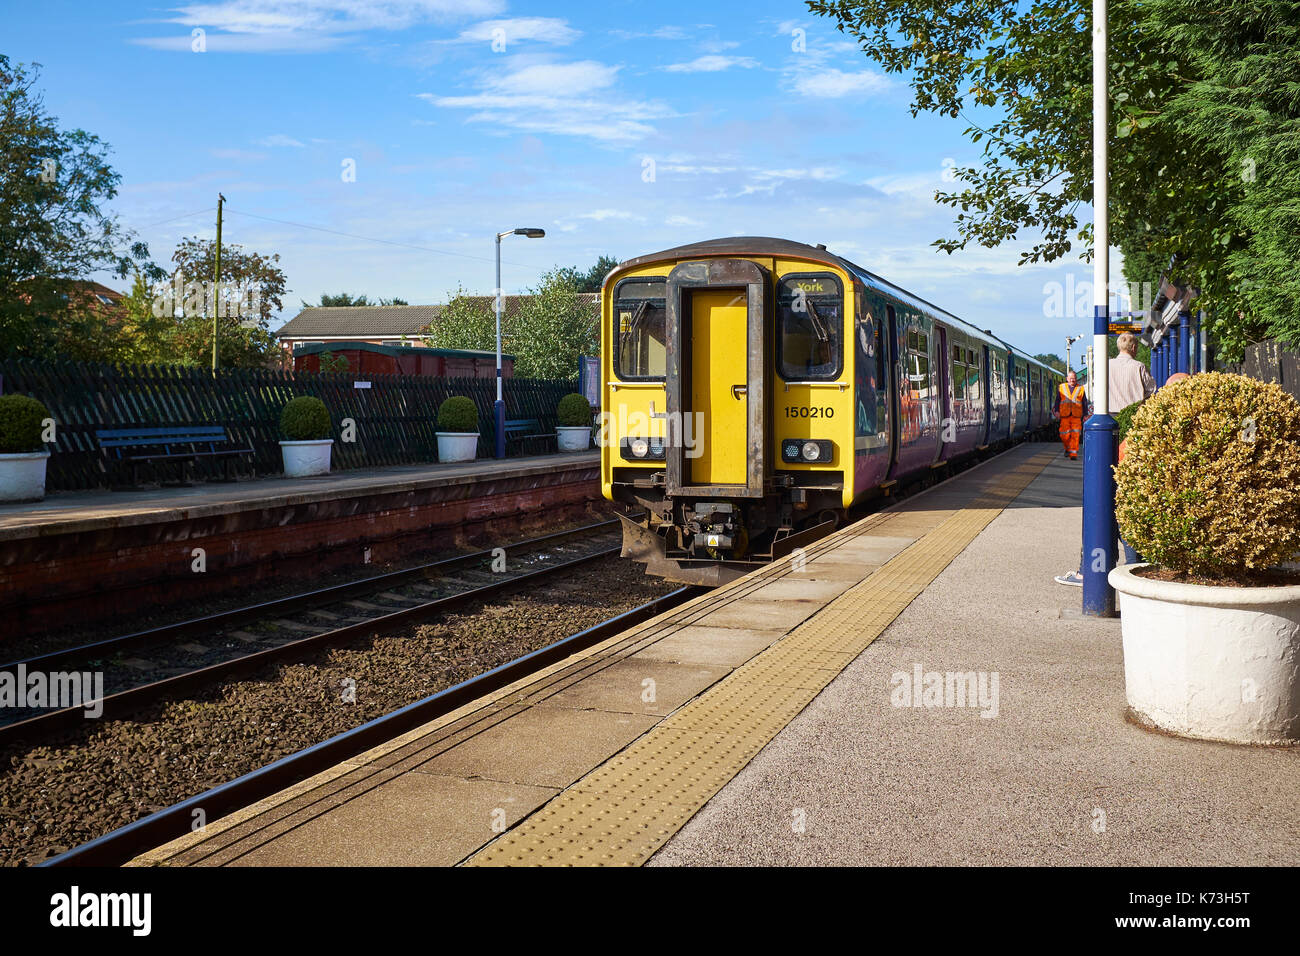 British Rail Class 150 'Sprinter' diesel multiple-units (DMUs; DMU) arriving at Poppleton Station, York, United Kingdom on a sunny day. - Stock Image